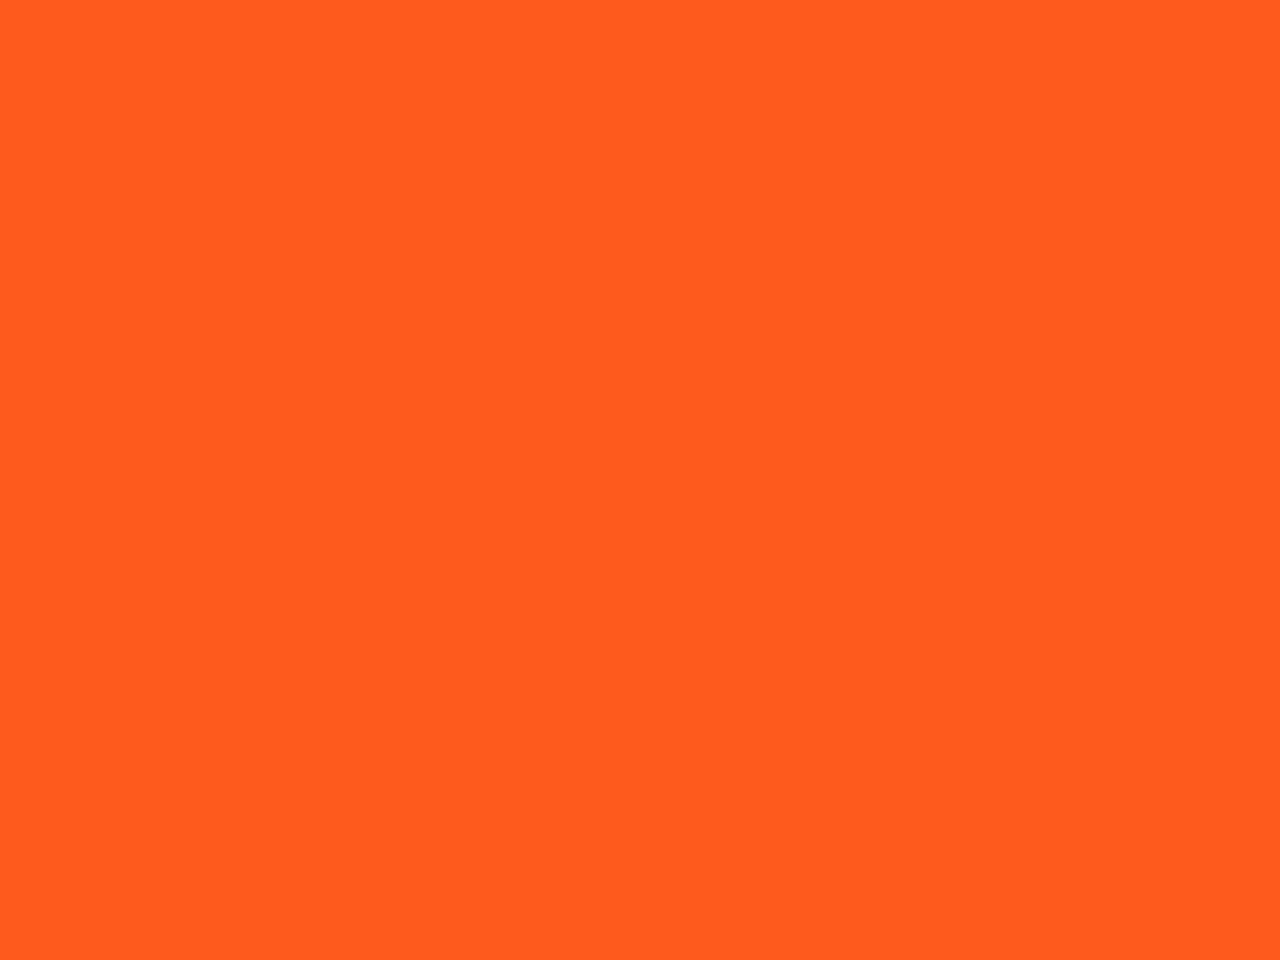 1280x960 Giants Orange Solid Color Background